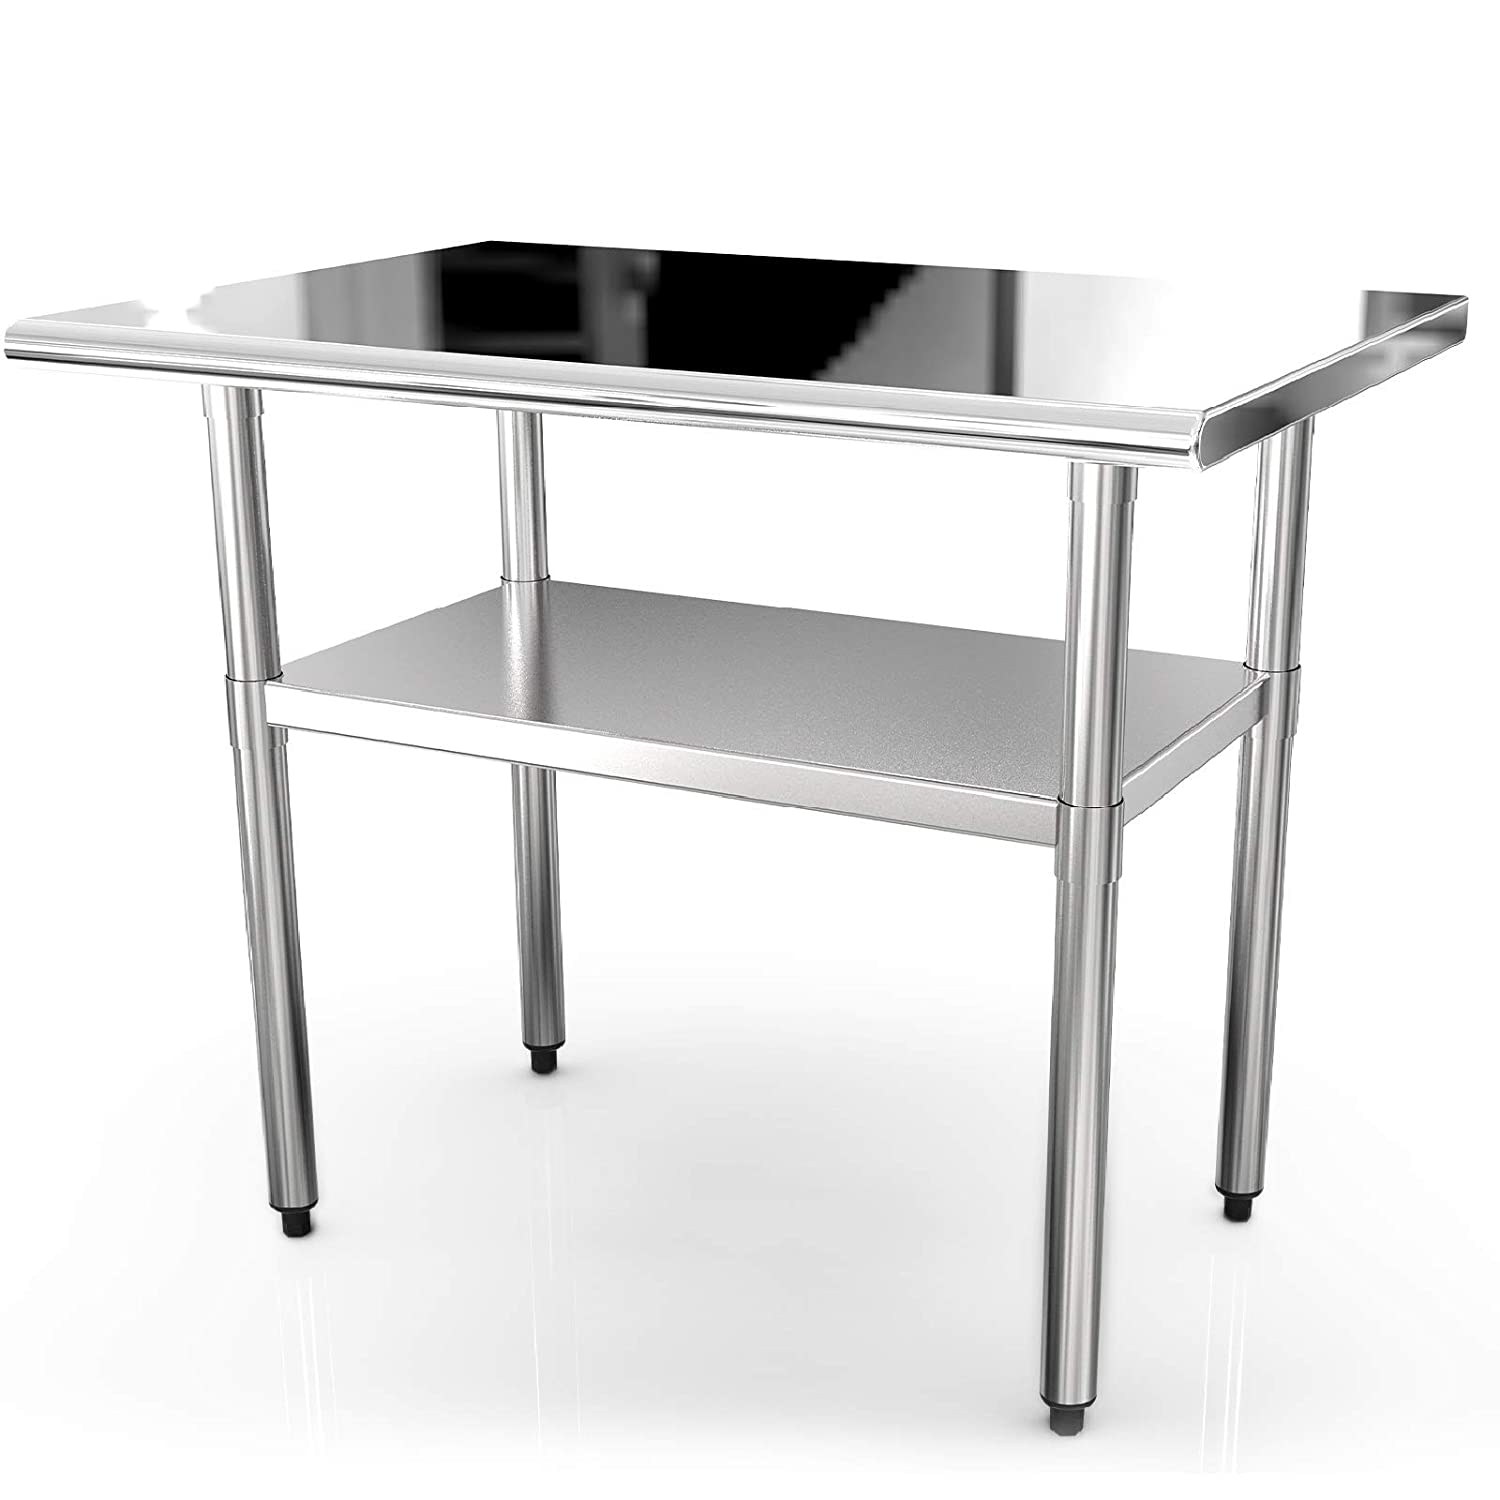 36x24 Oklahoma City Mall Inches Commercial Prep Table Stainless Steel Work Tables f gift